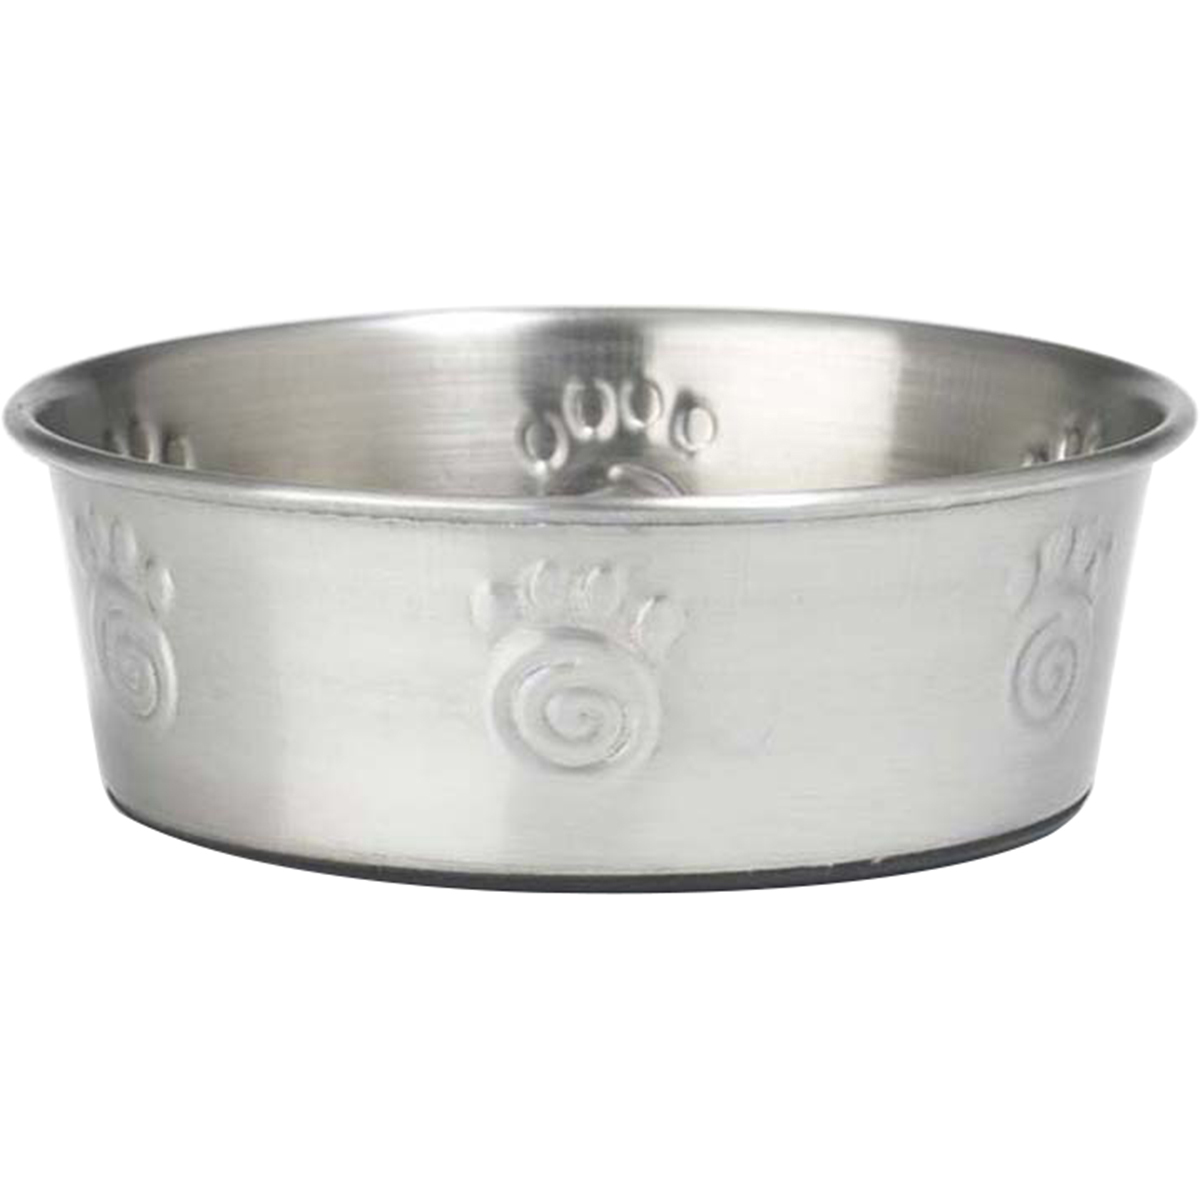 Petrageous Designs Stainless Steel Bowl - Holds 2 Cups-Cayman - image 1 of 1